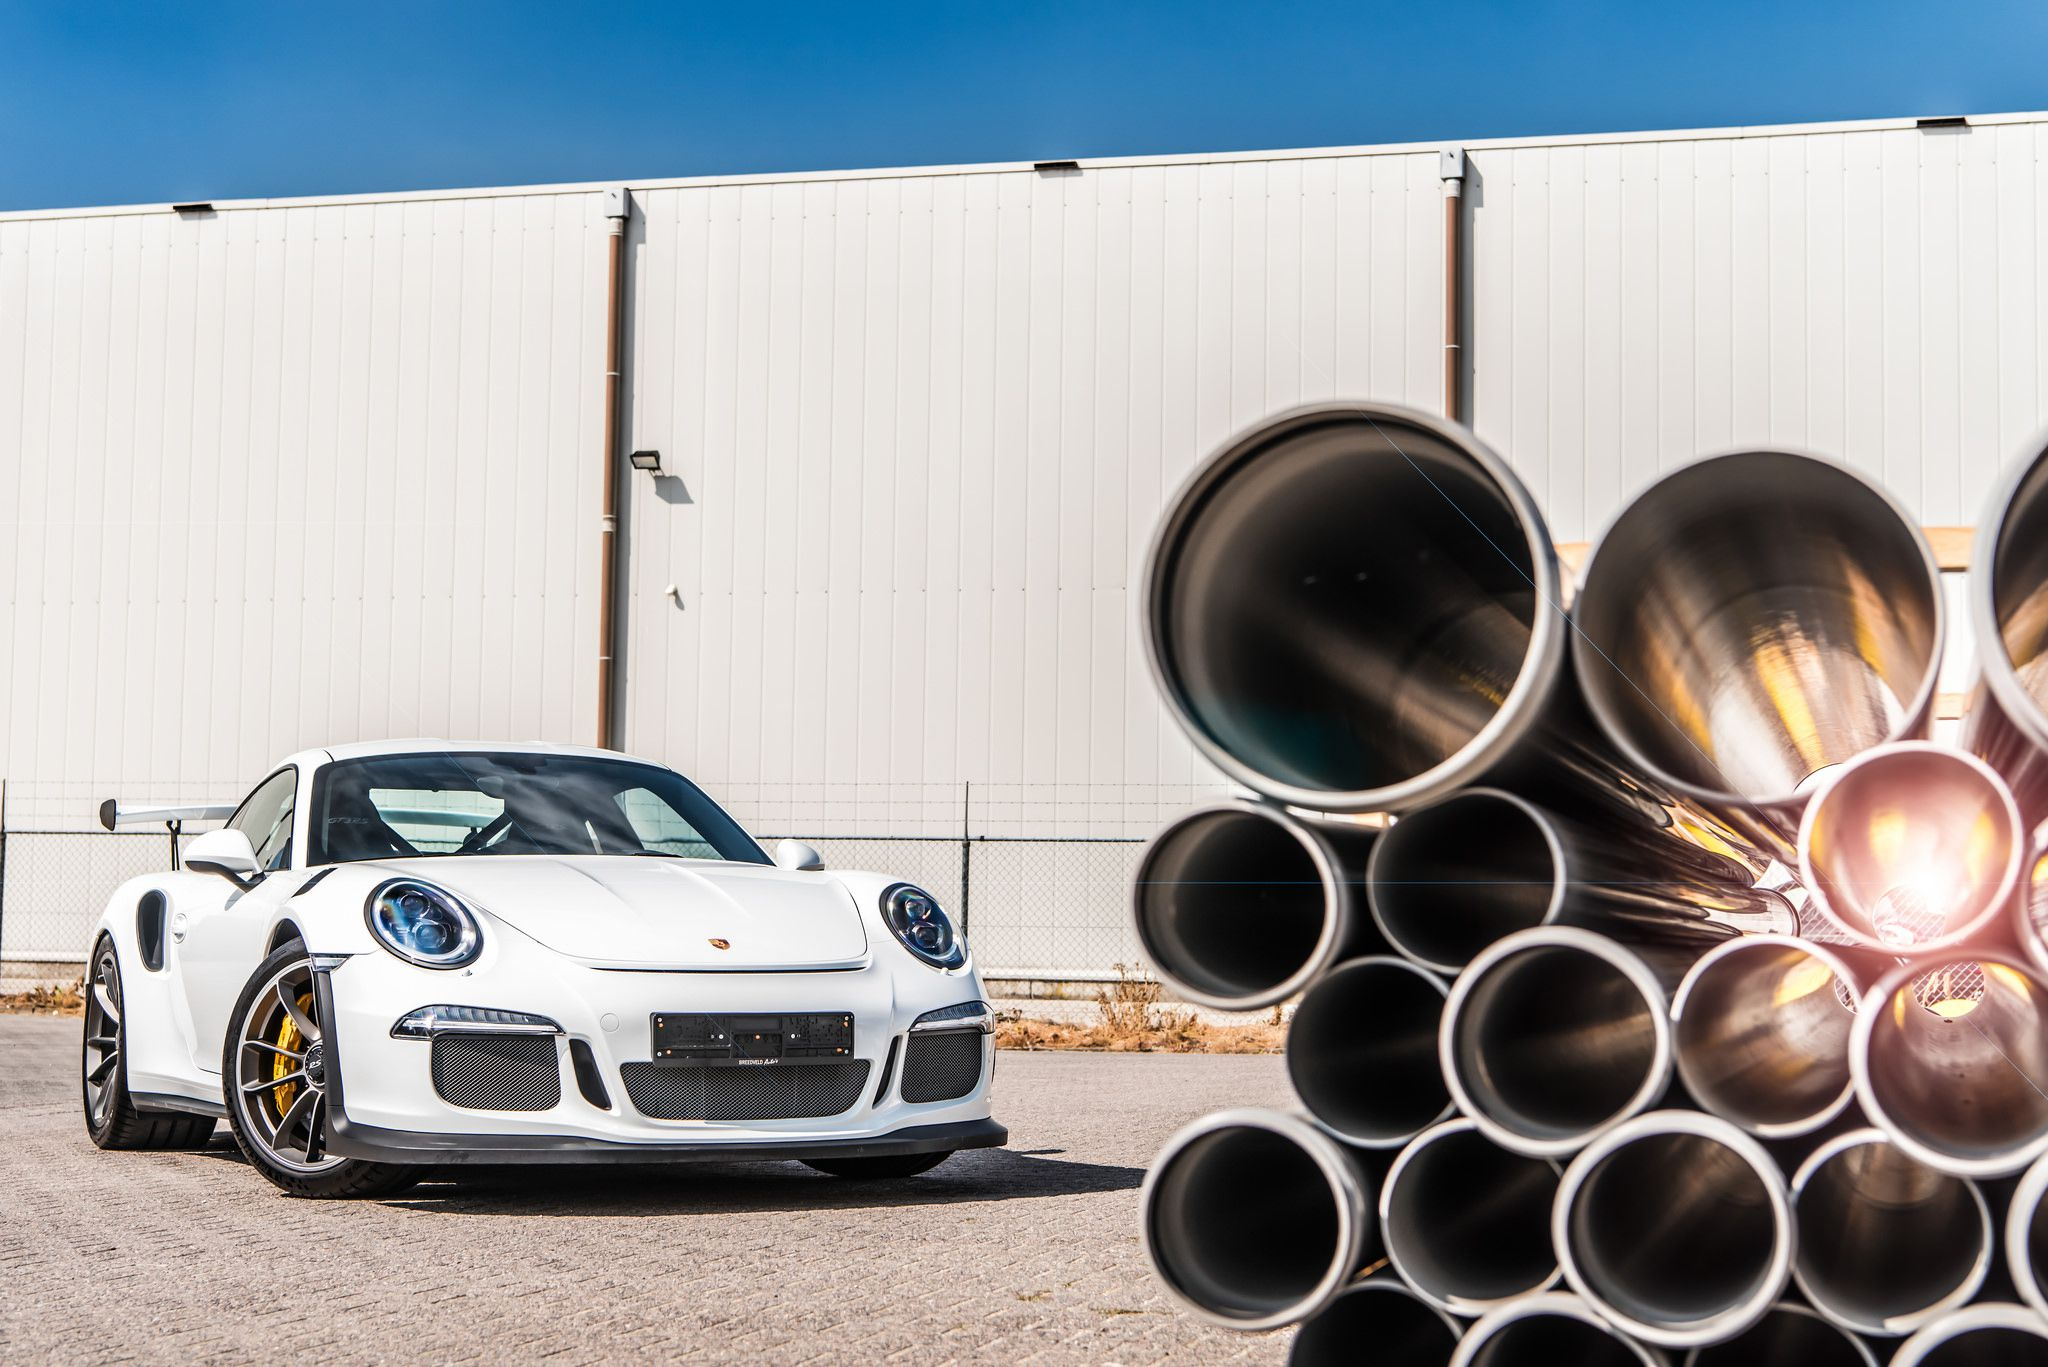 2018 white Porsche GT3 RS by Bas Fransen